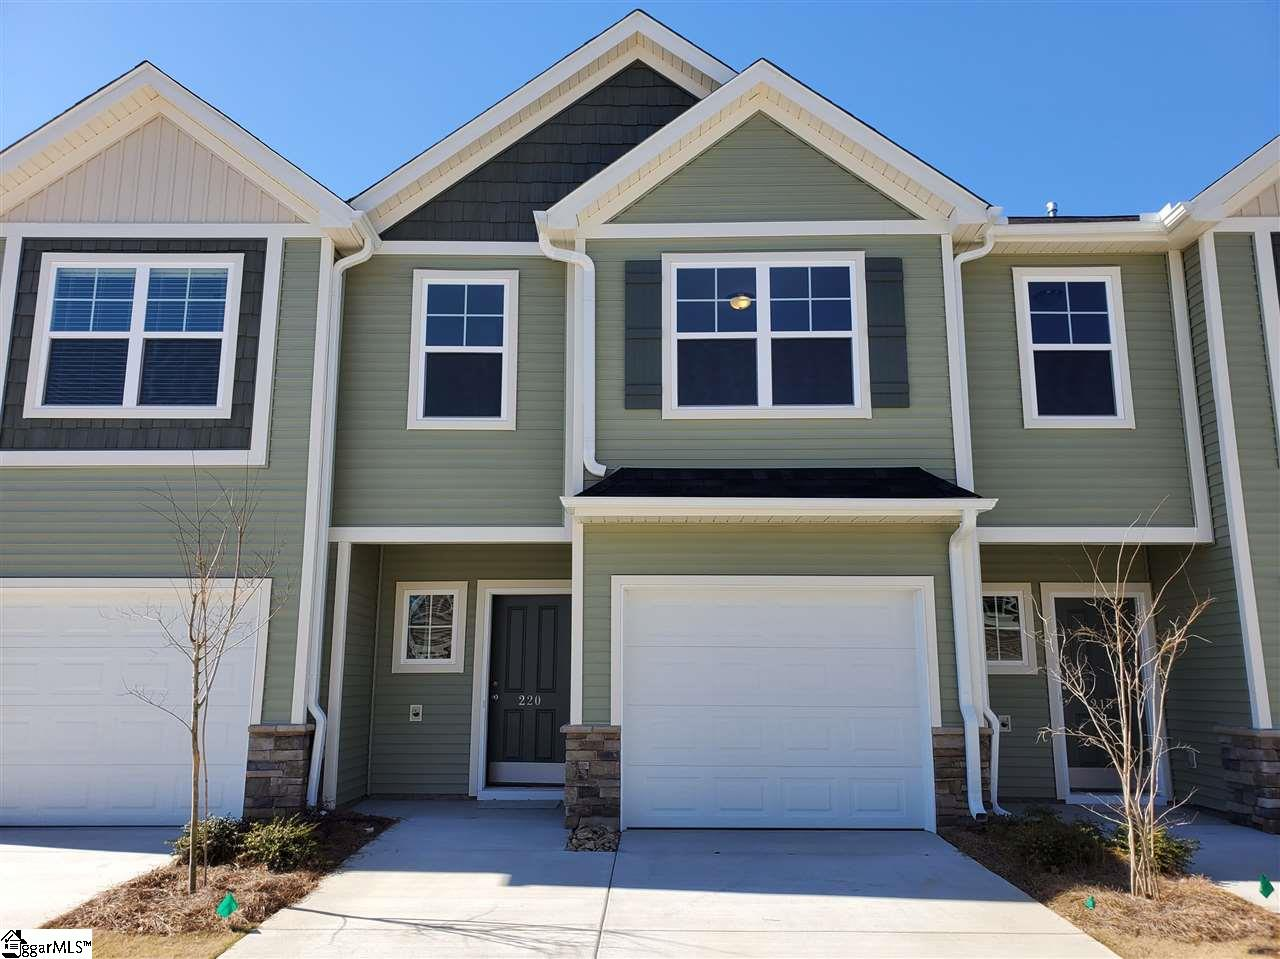 220 Button Willow Street, Taylors, South Carolina 29687, 3 Bedrooms Bedrooms, ,2 BathroomsBathrooms,Condo/Townhouse (Attached),For Sale,Button Willow,1411820